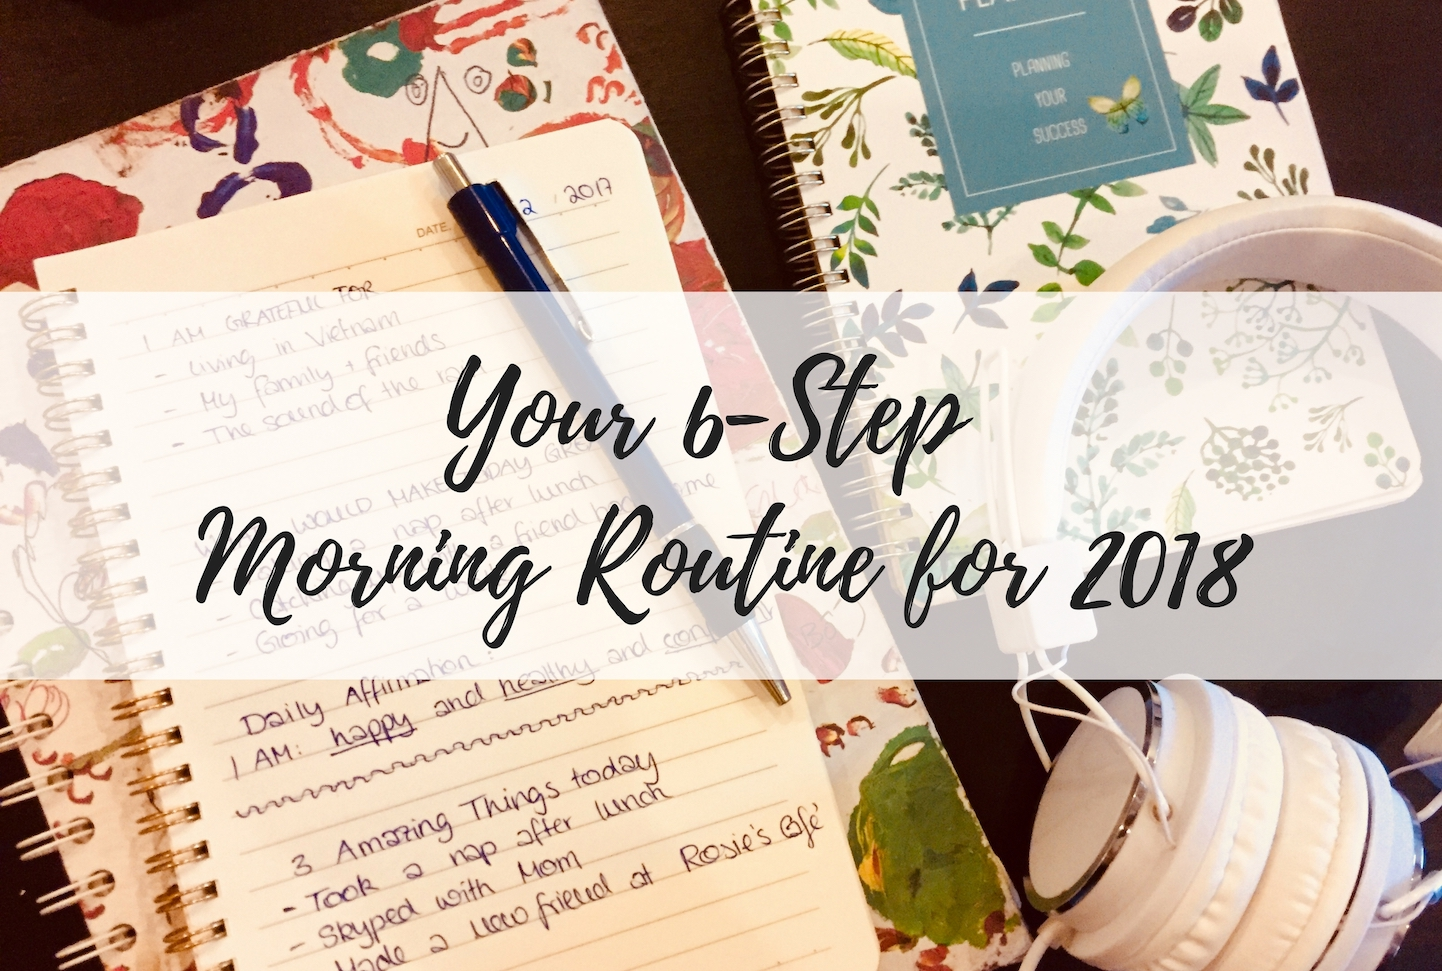 Your 6-Step Morning Routine for 2018